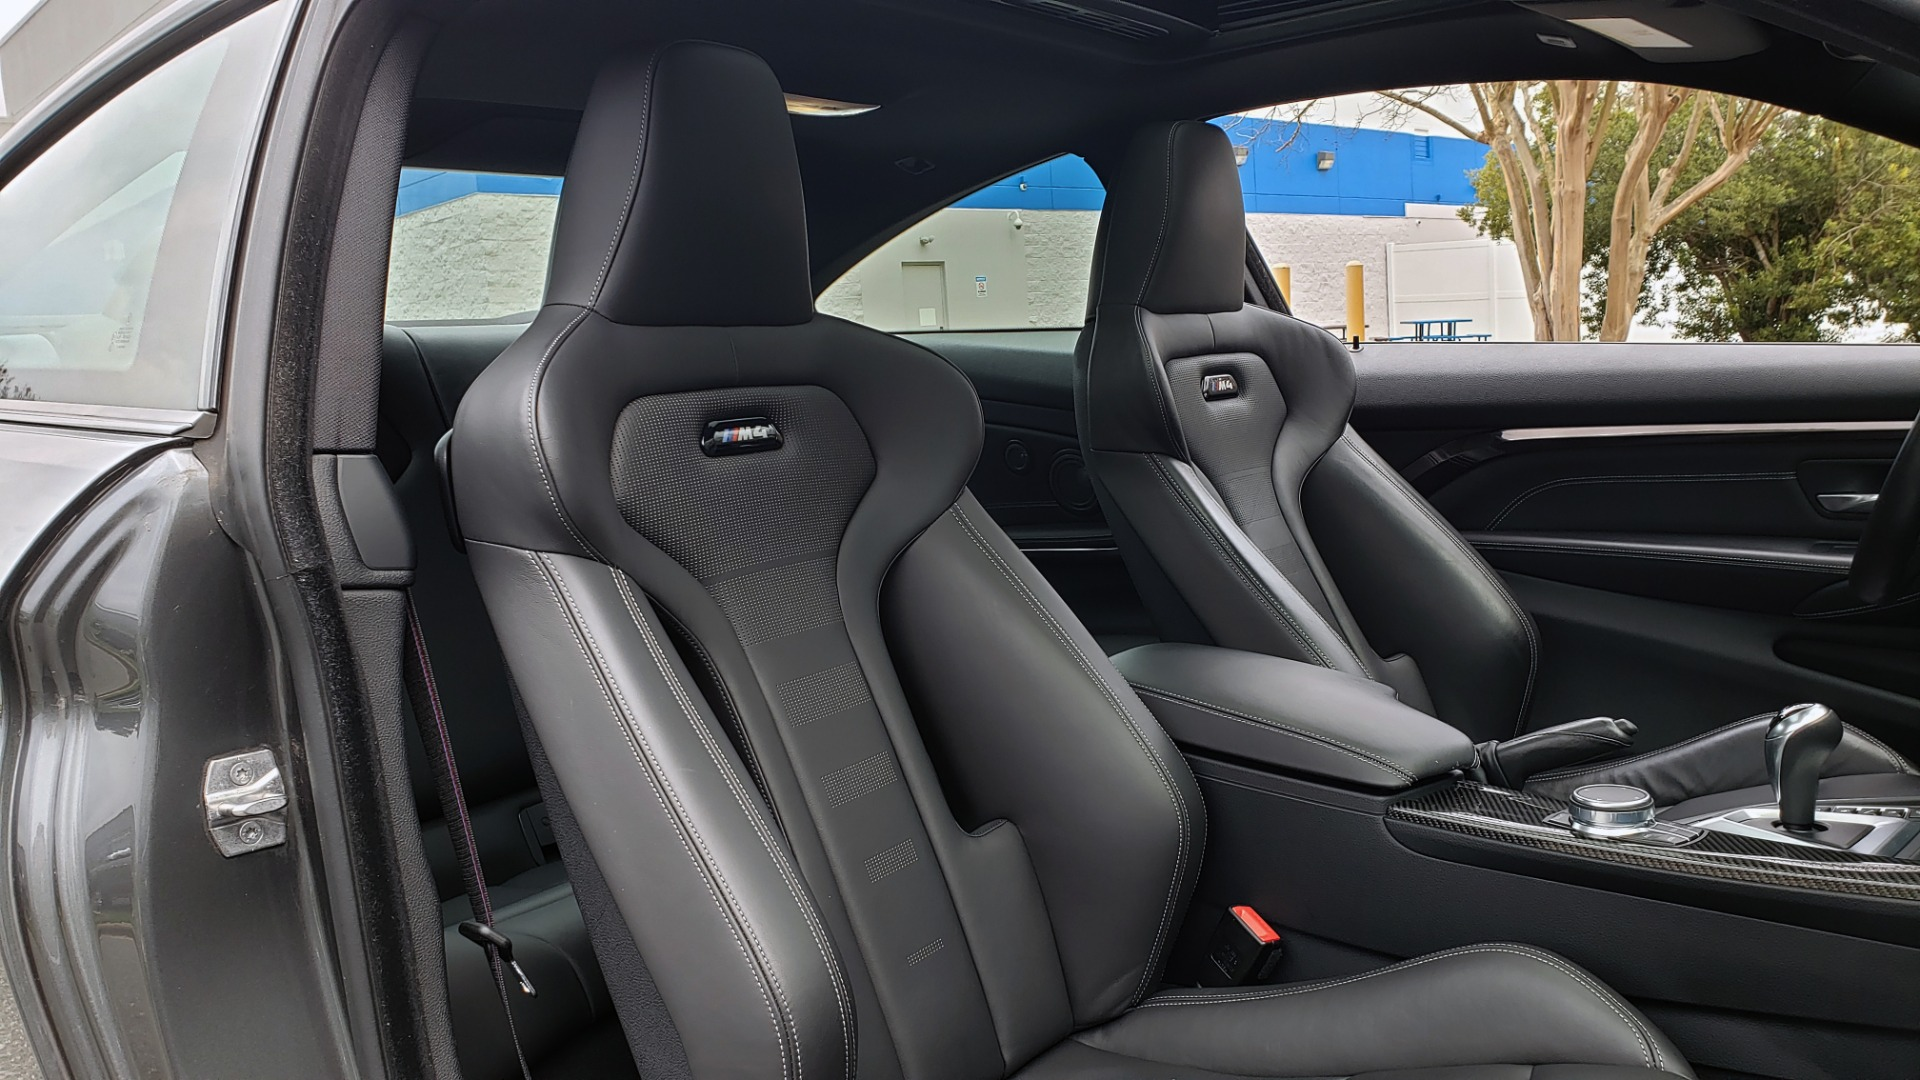 Used 2018 BMW M4 M-COMP / EXEC PKG / 7-SPD DBL CLUTCH / NAV / REARVIEW for sale Sold at Formula Imports in Charlotte NC 28227 61